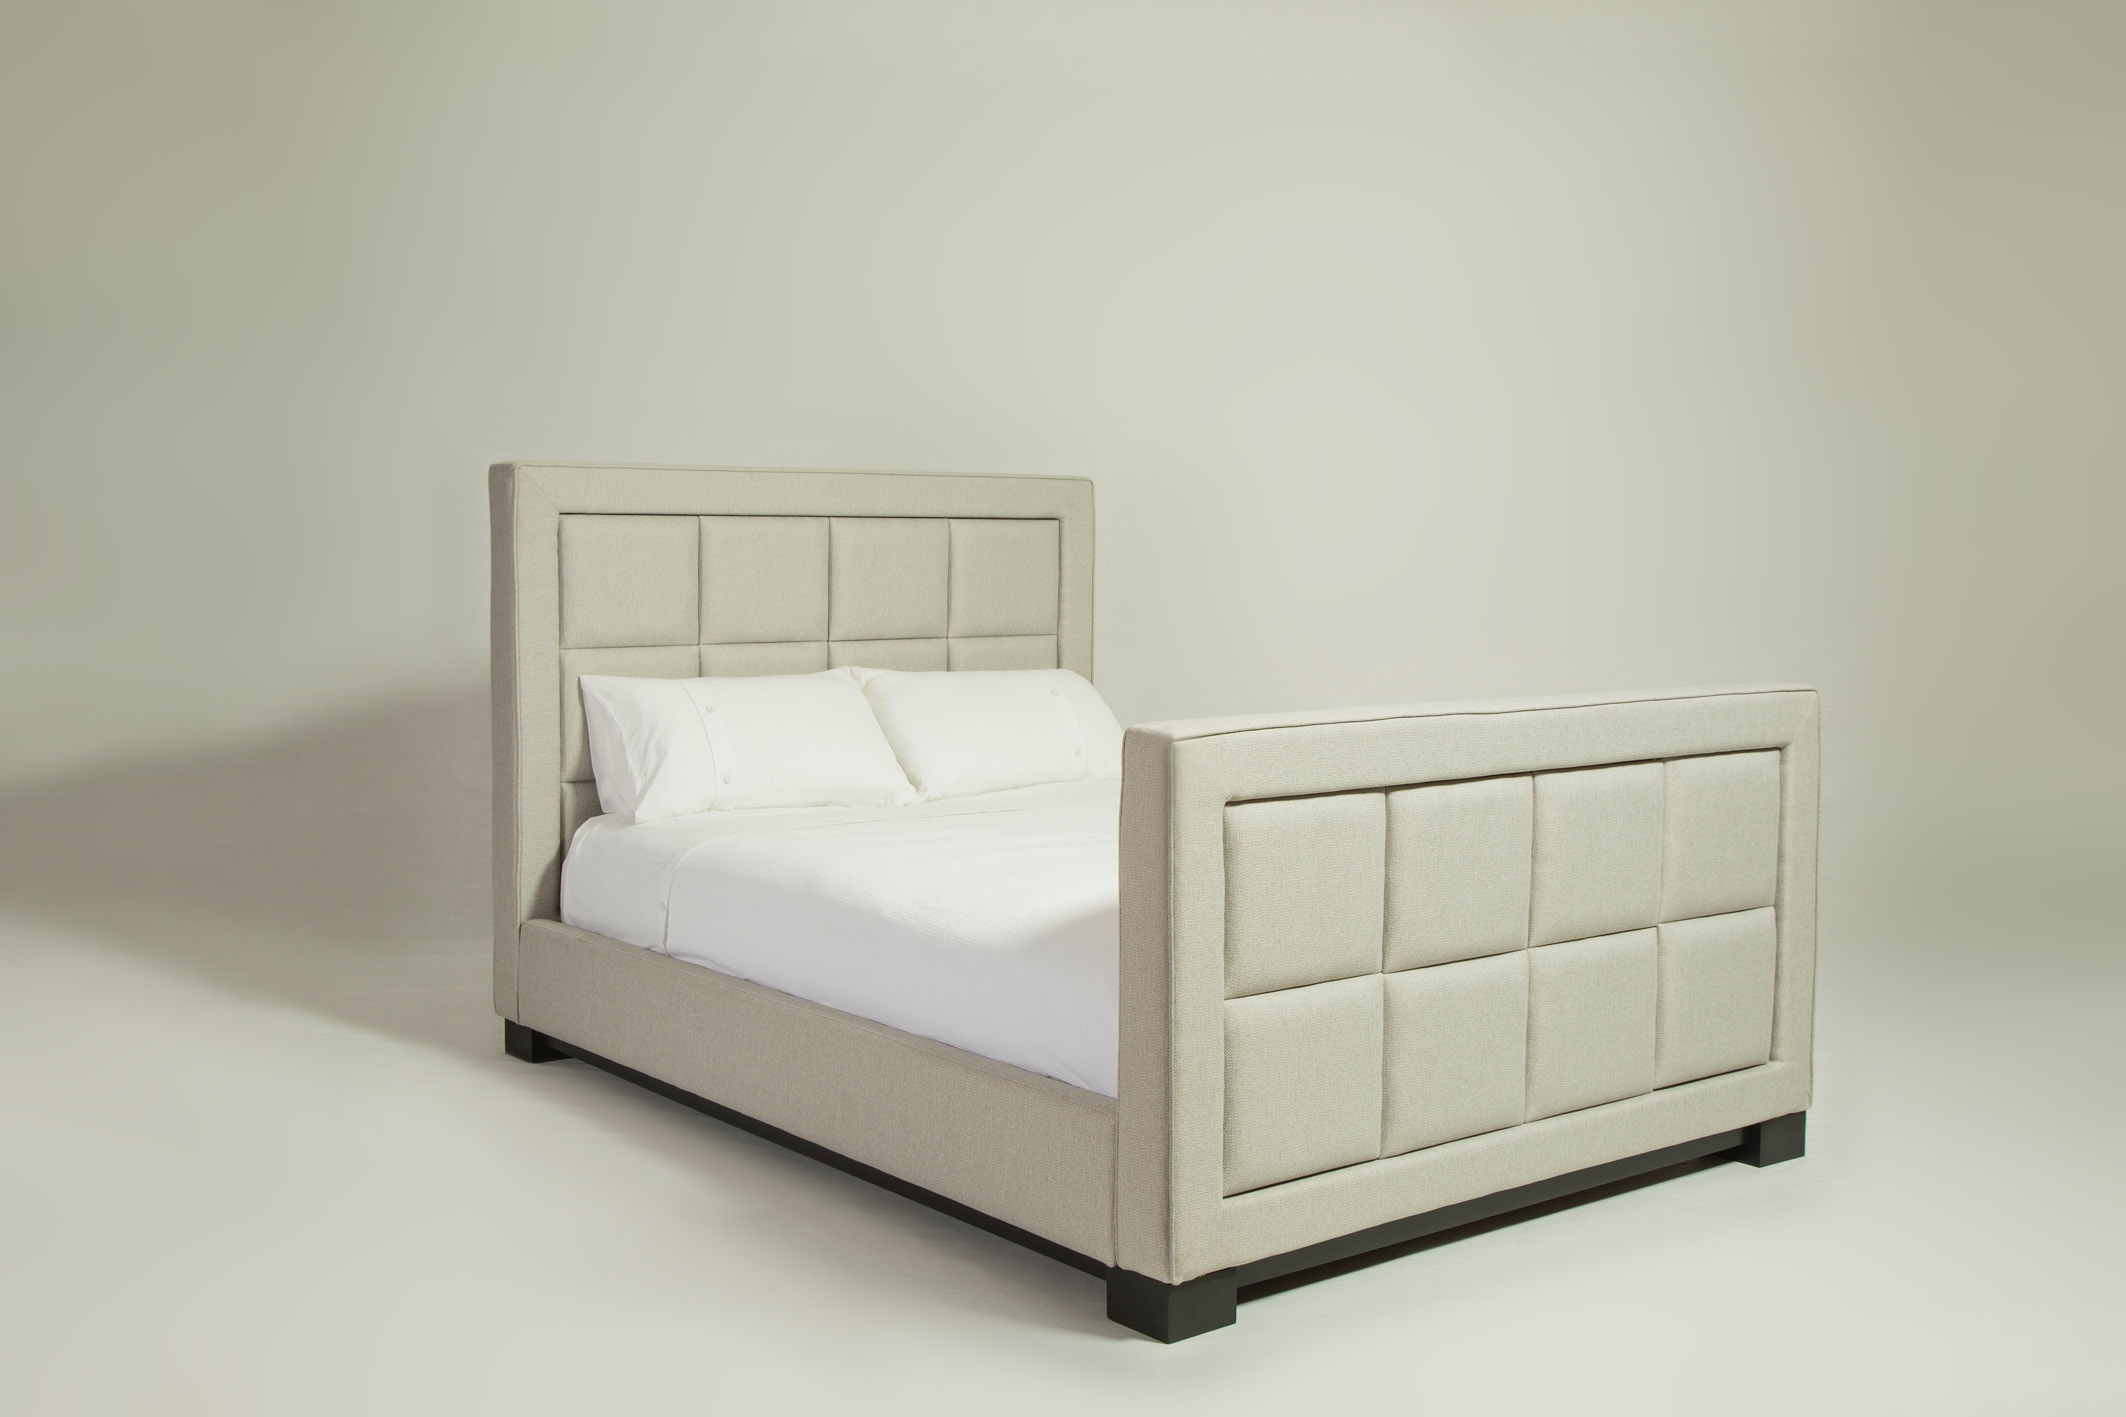 lux_panelled_bed_02.jpg